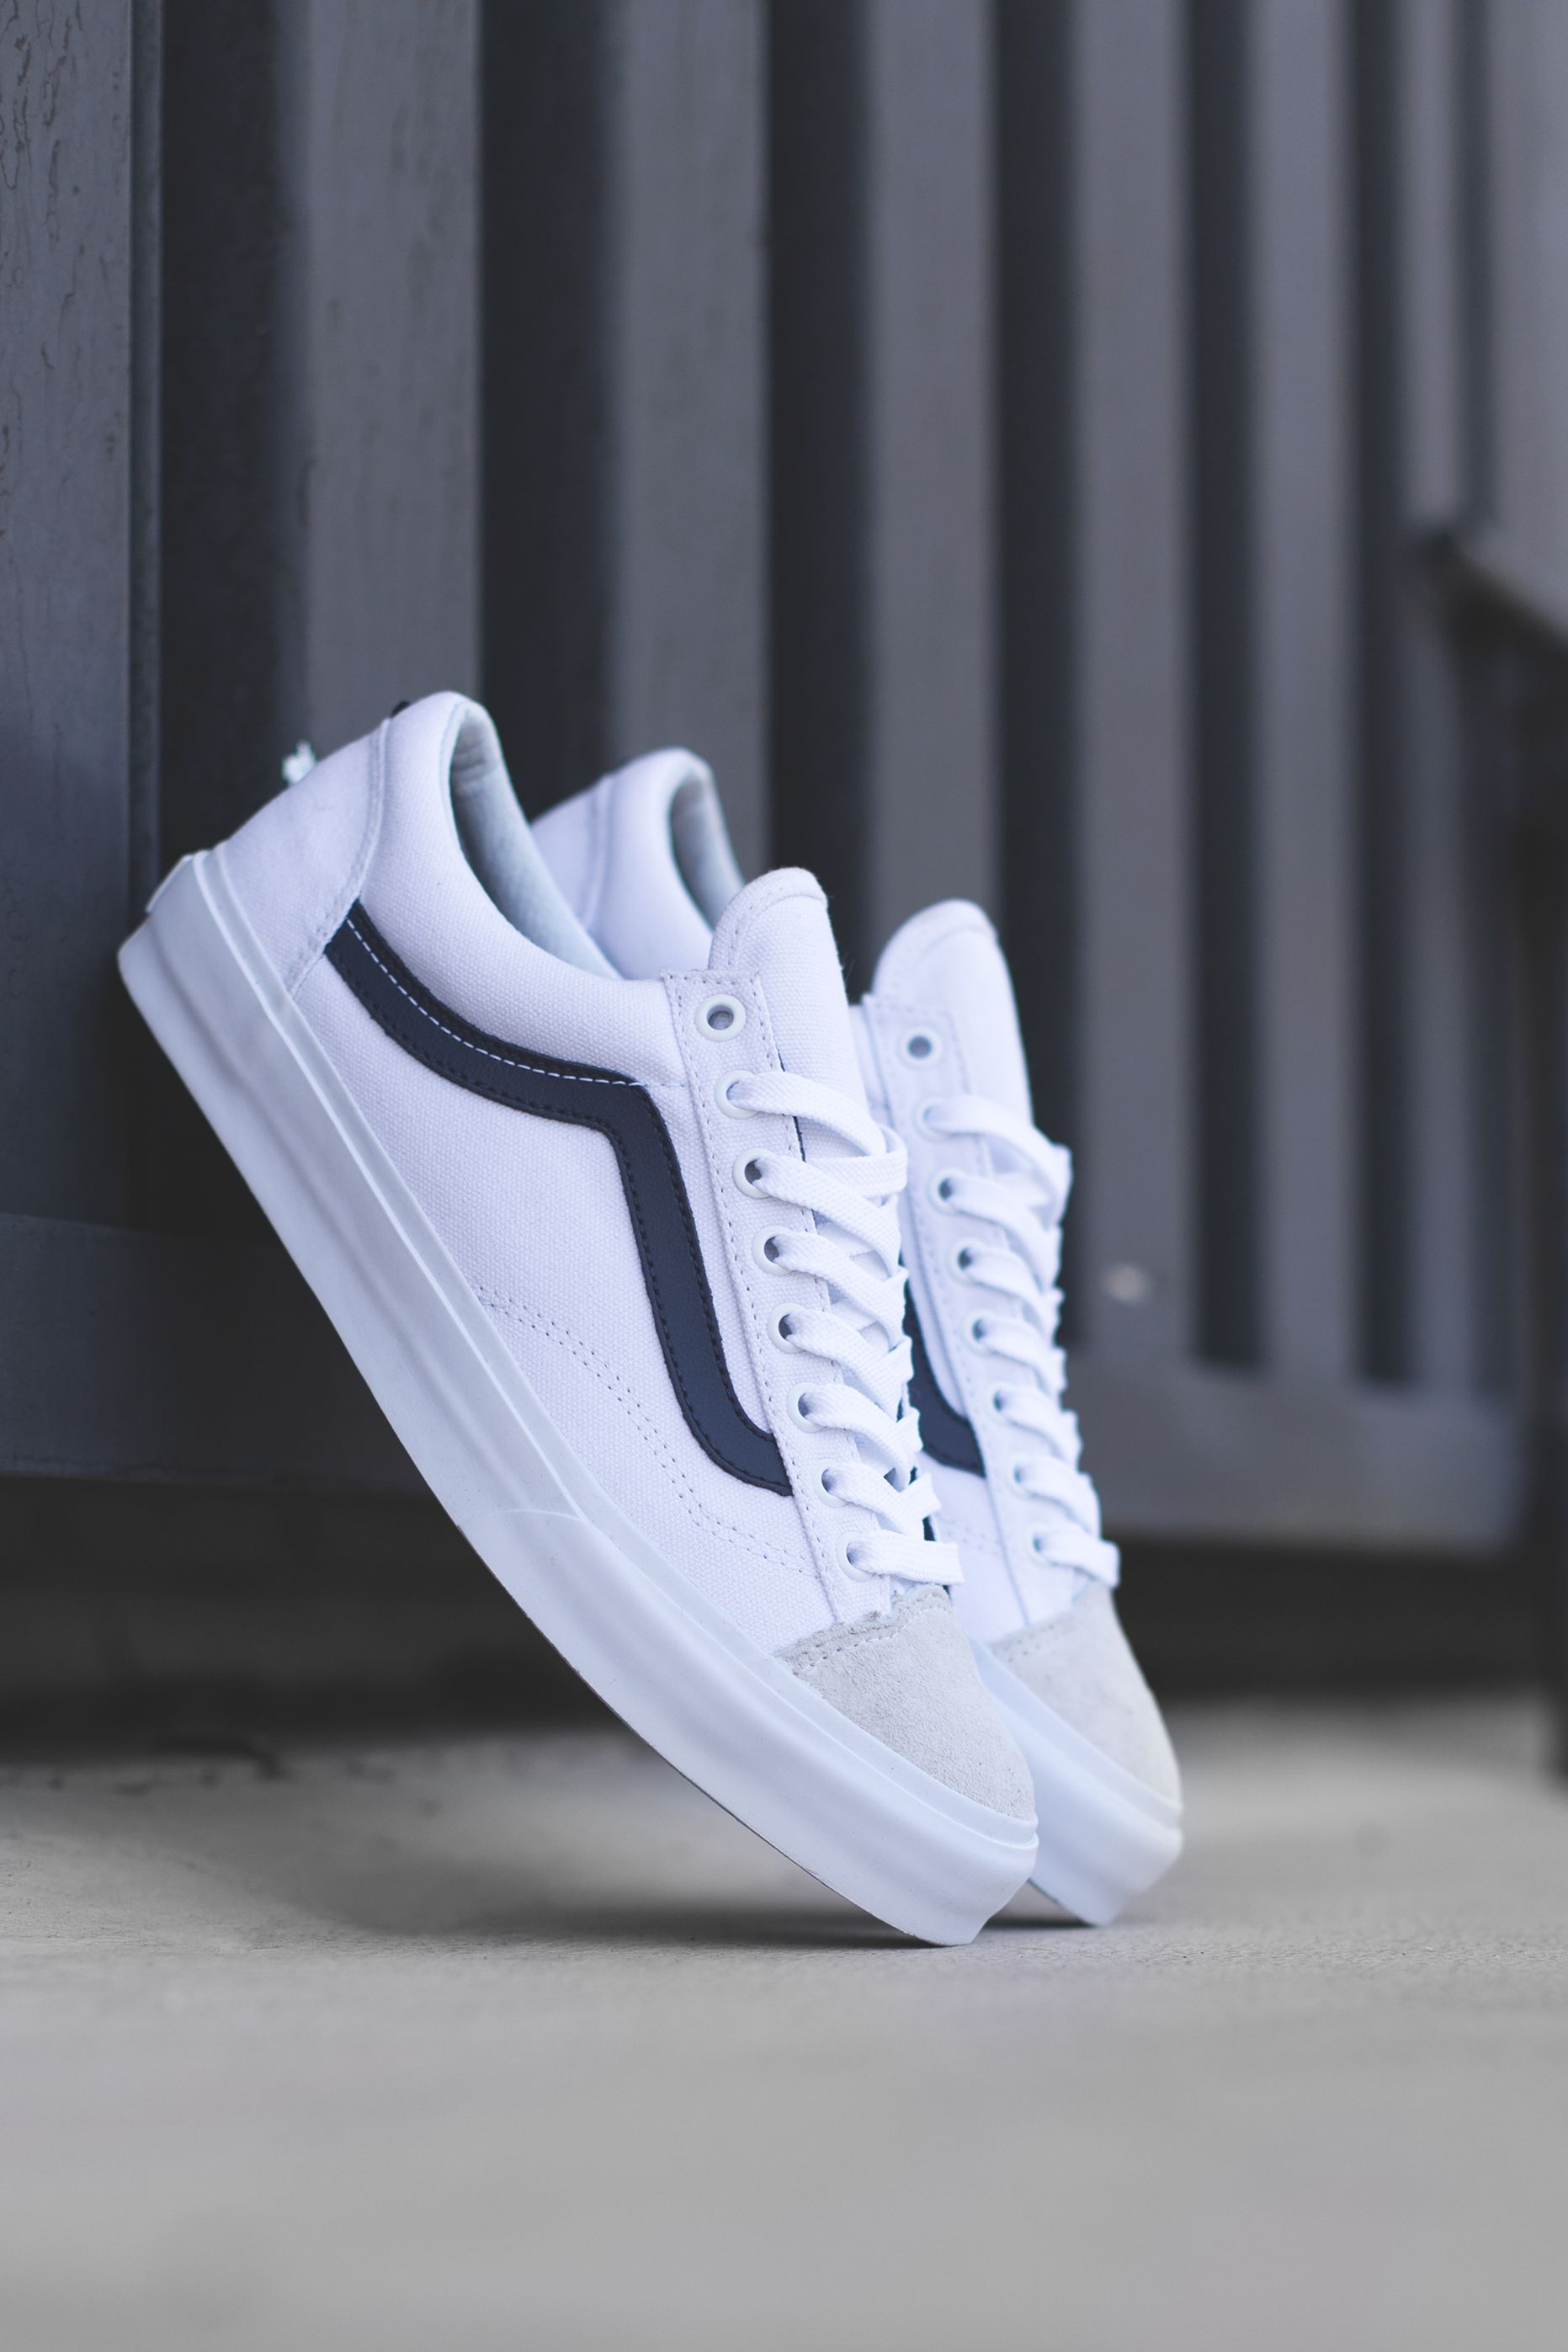 7f02e873bb528d Vans Style 36 Vanguard In Dress Blues  Vans  Vansguard  Footwear  Sneakers   Fashion  LookBook